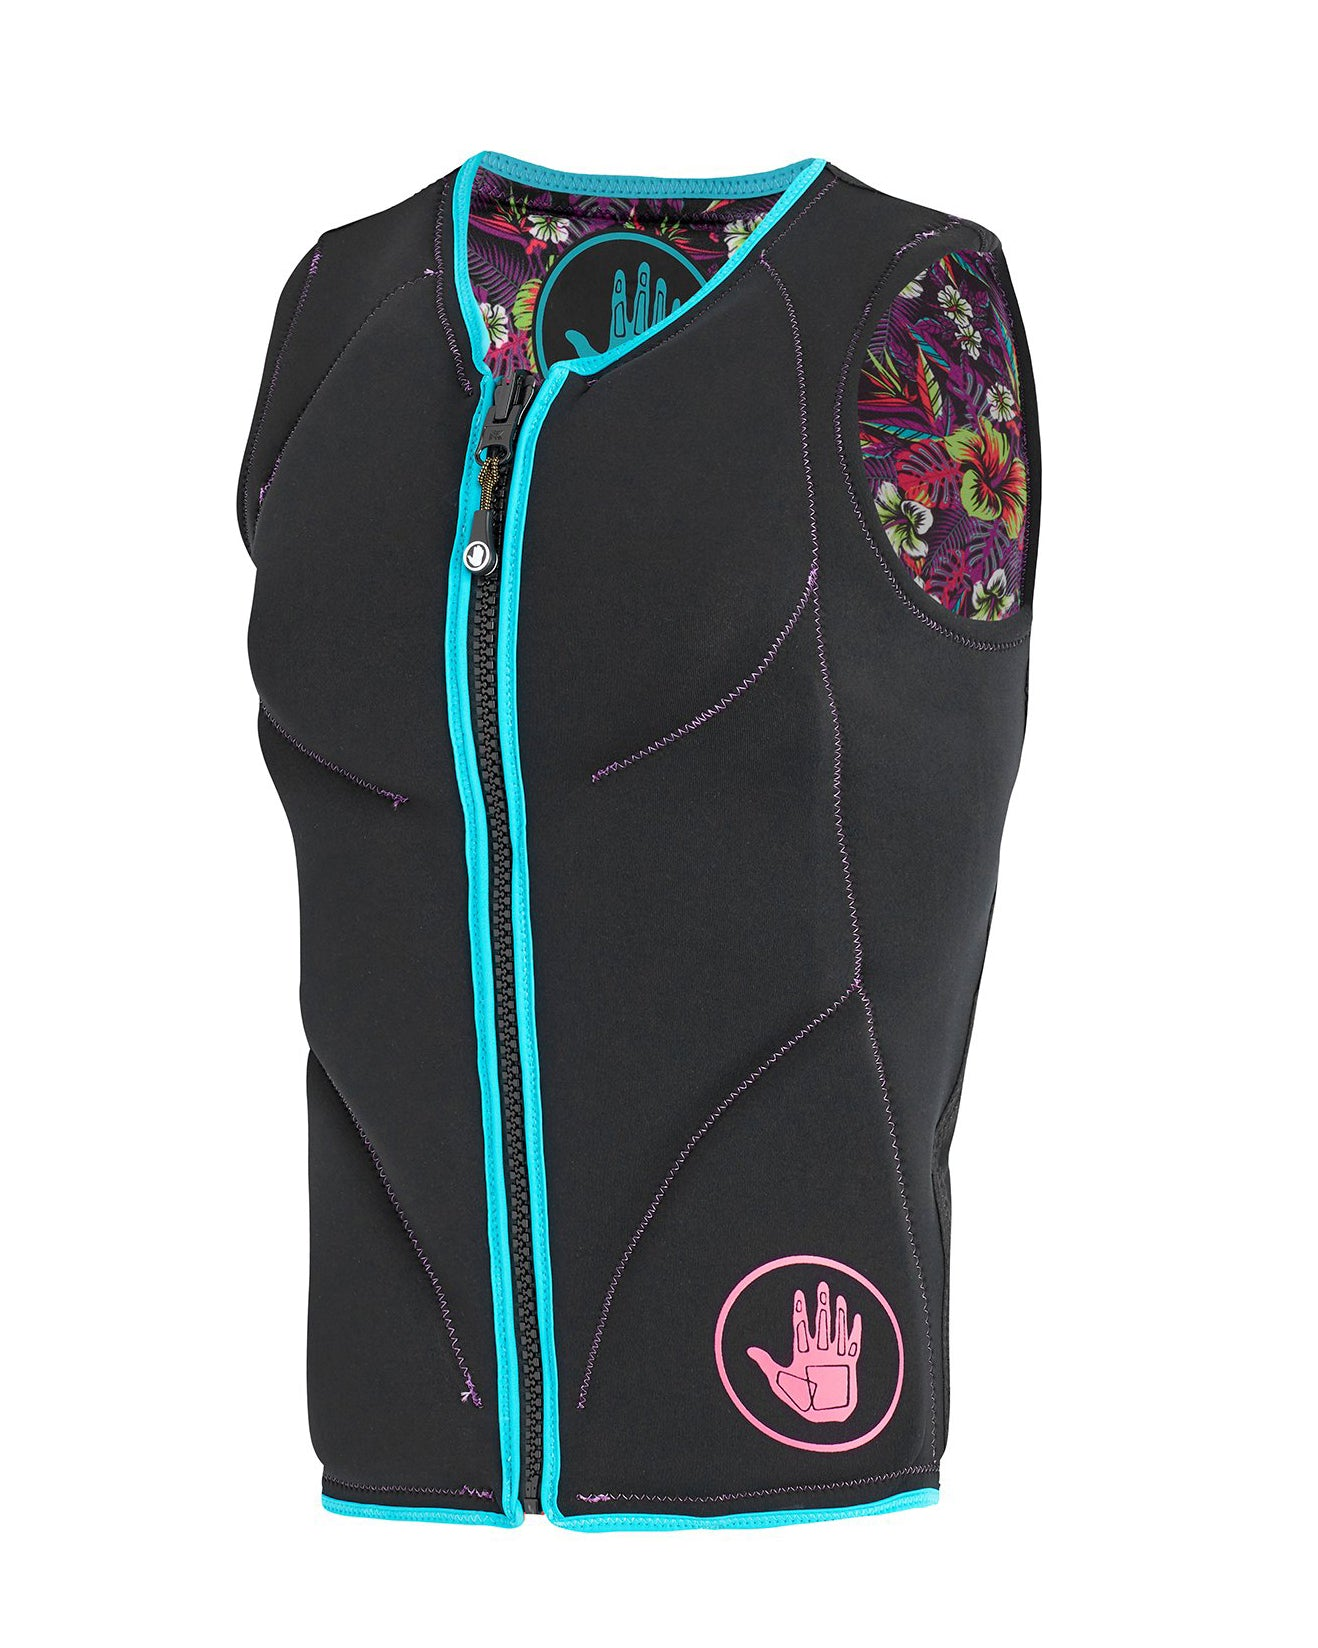 Women's Comp Vest - Black